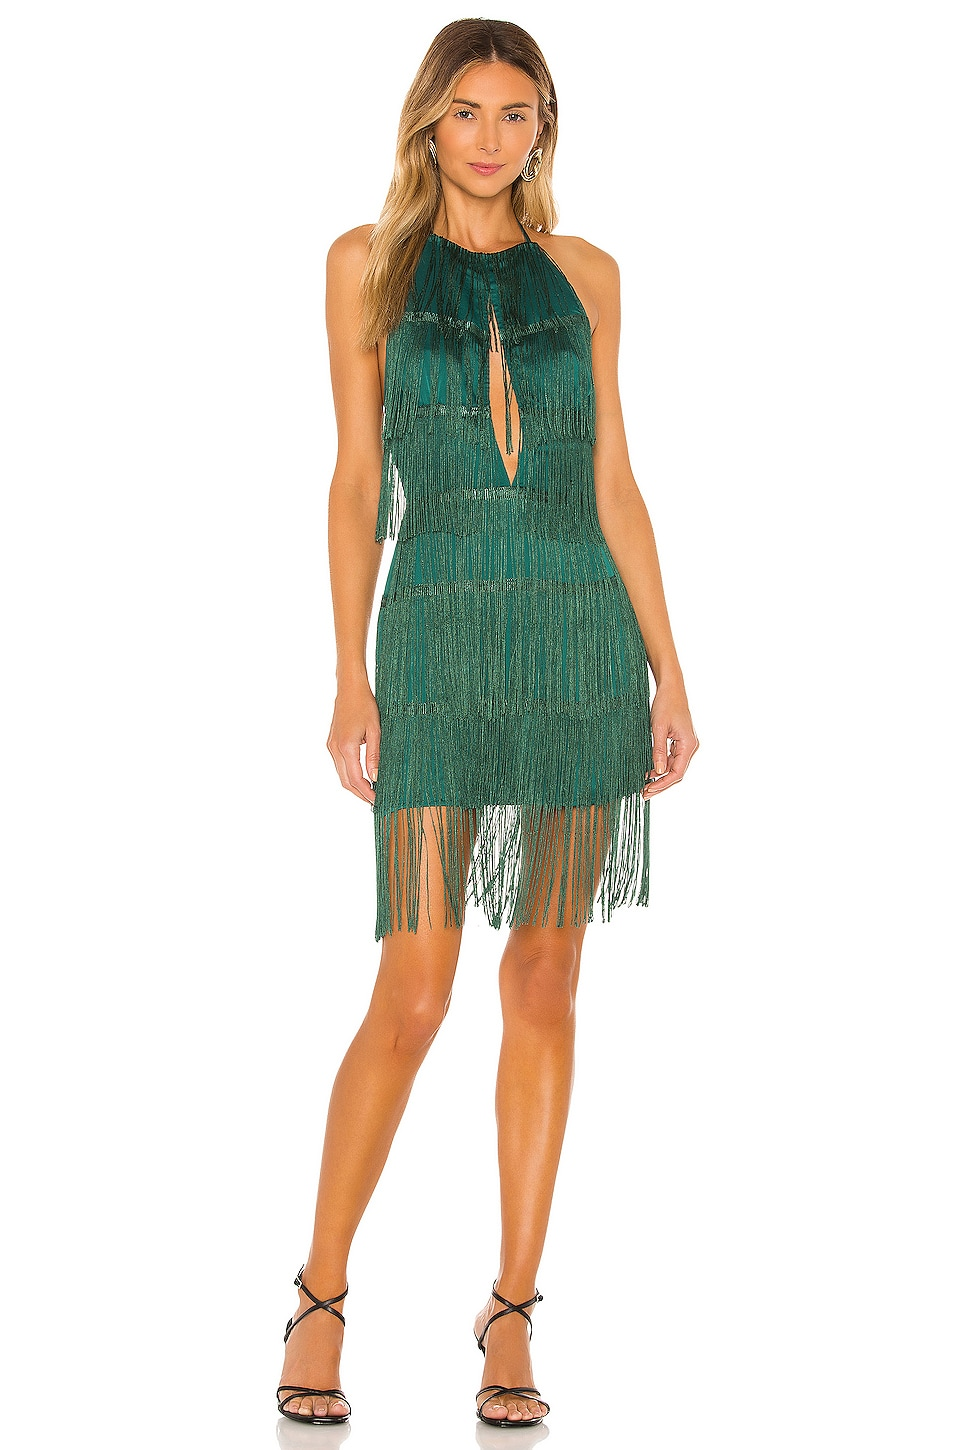 House of Harlow 1960 x REVOLVE Georgia Fringe Dress in Emerald